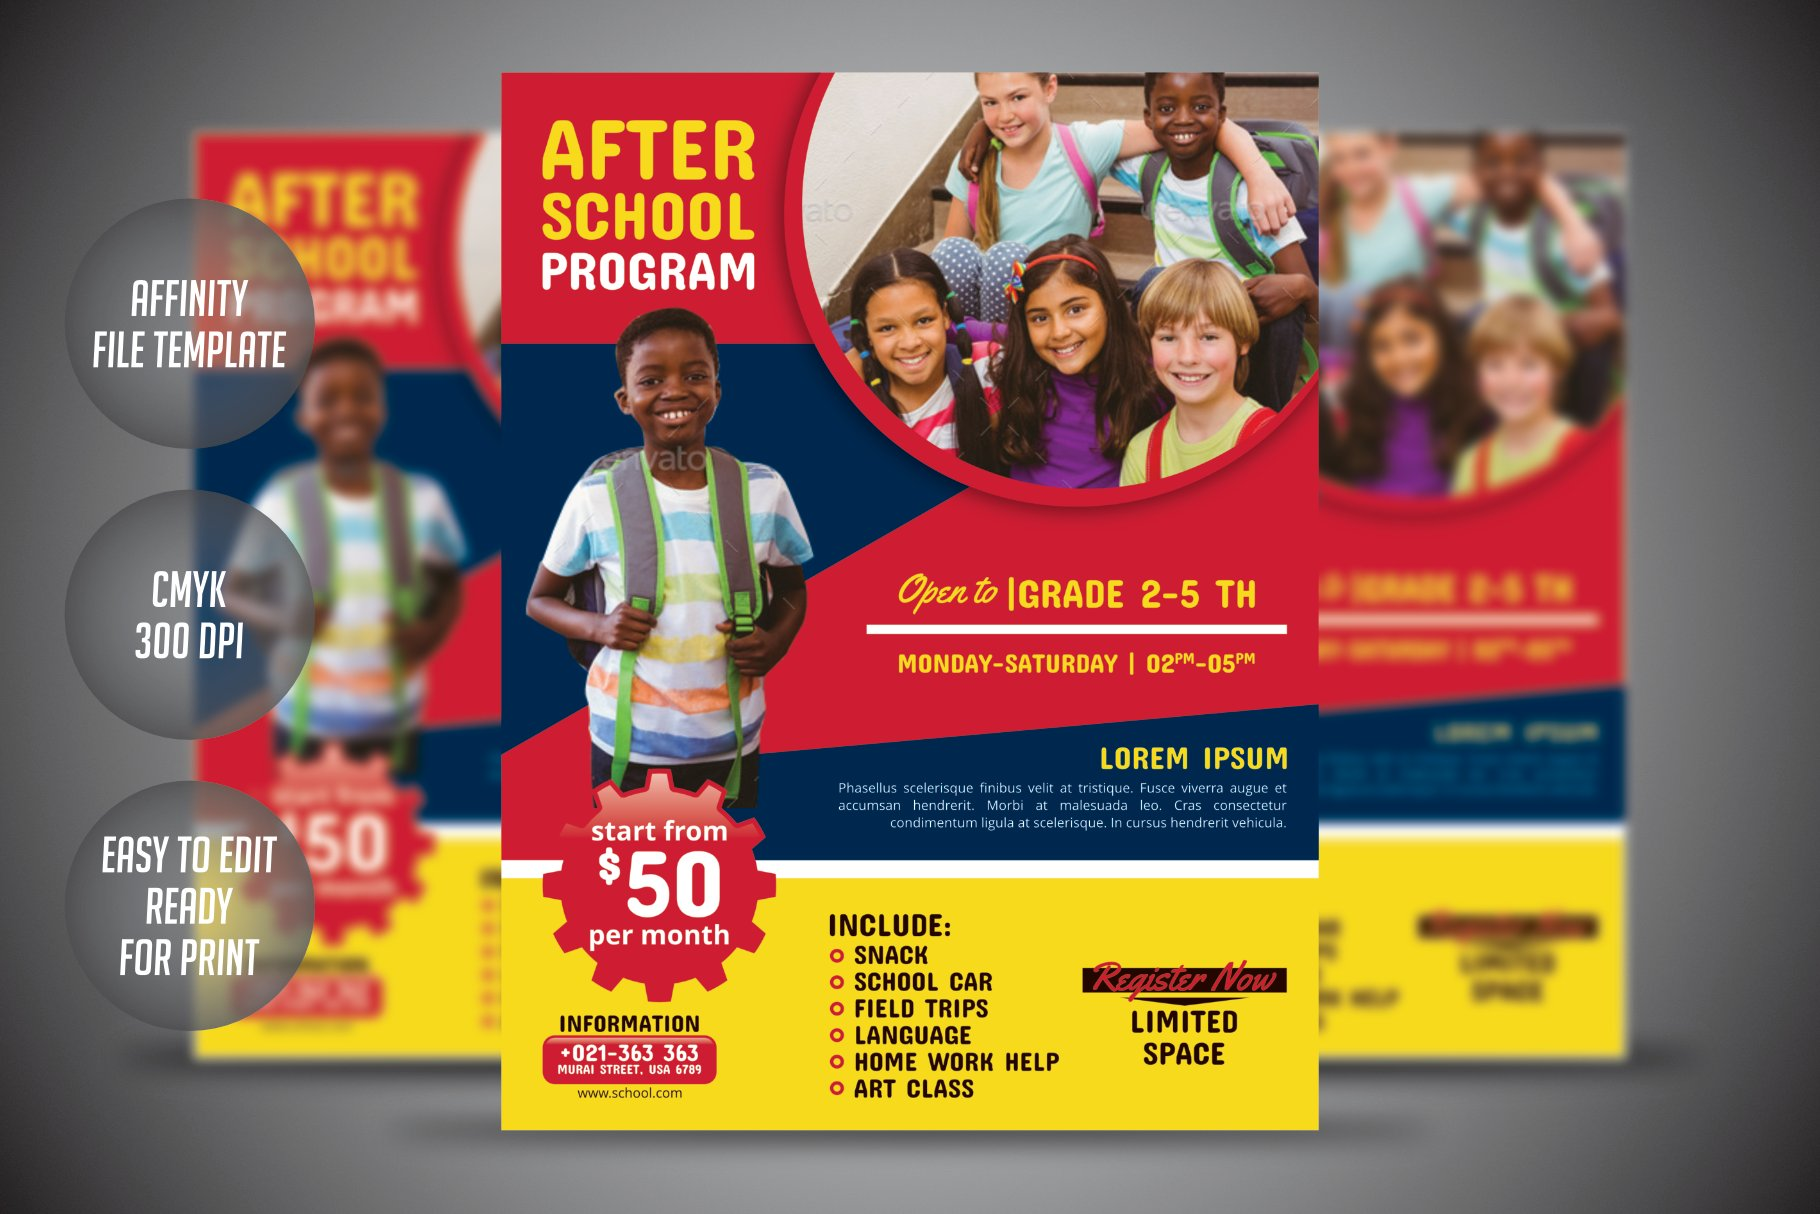 After School Program Flyer Template Flyer Templates Creative Market